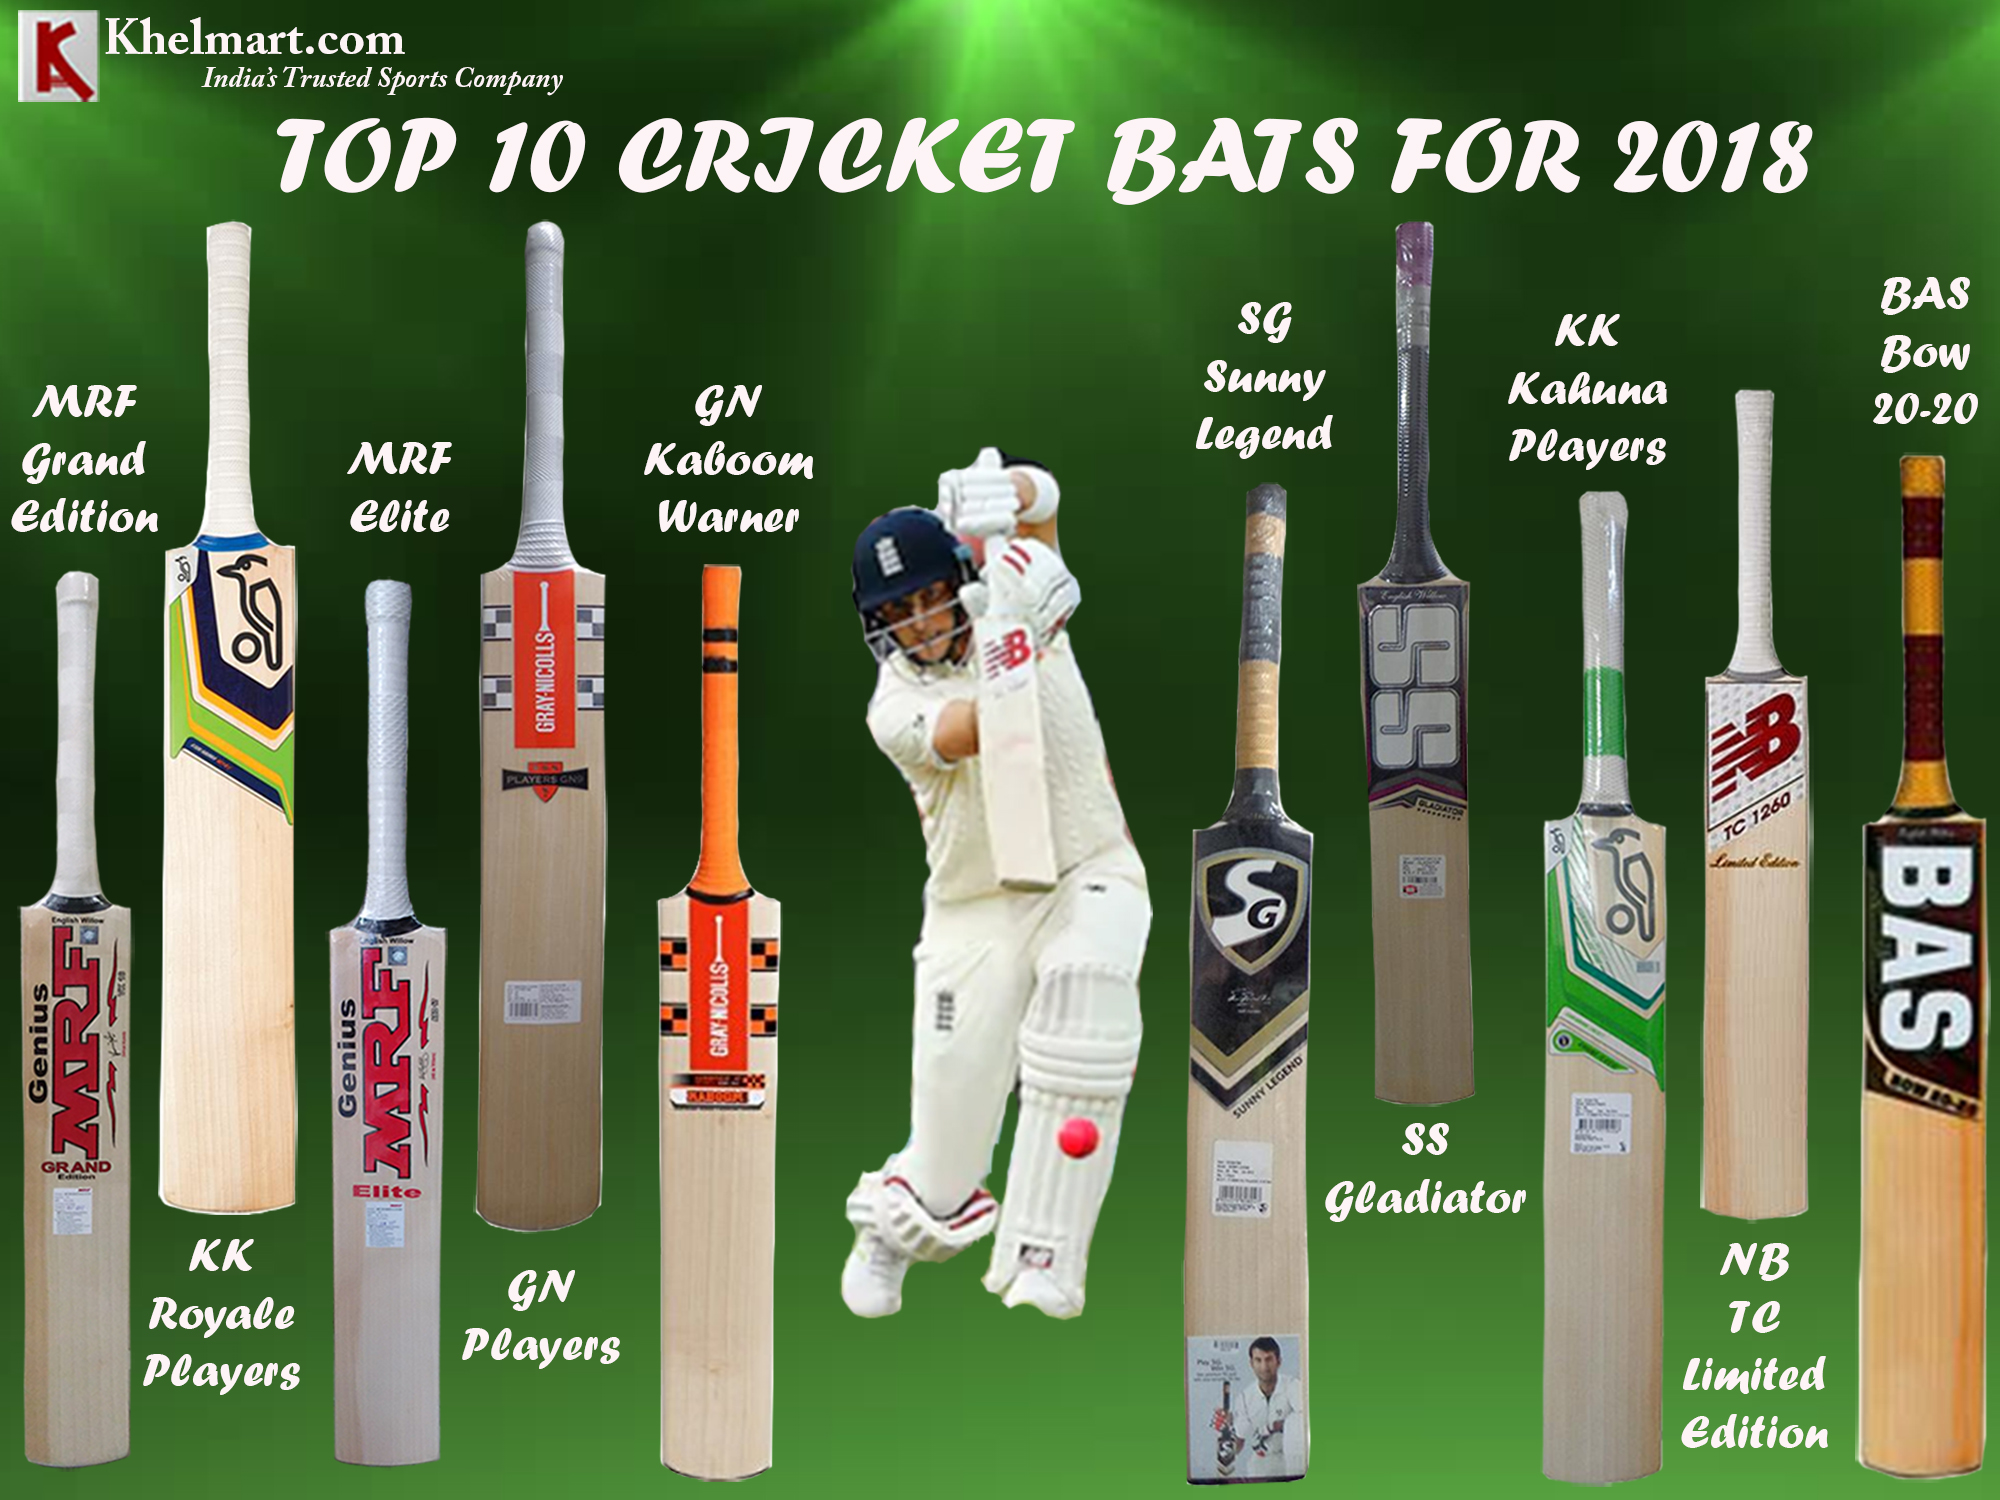 TOP 10 CRICKET BATS FOR 2018_1